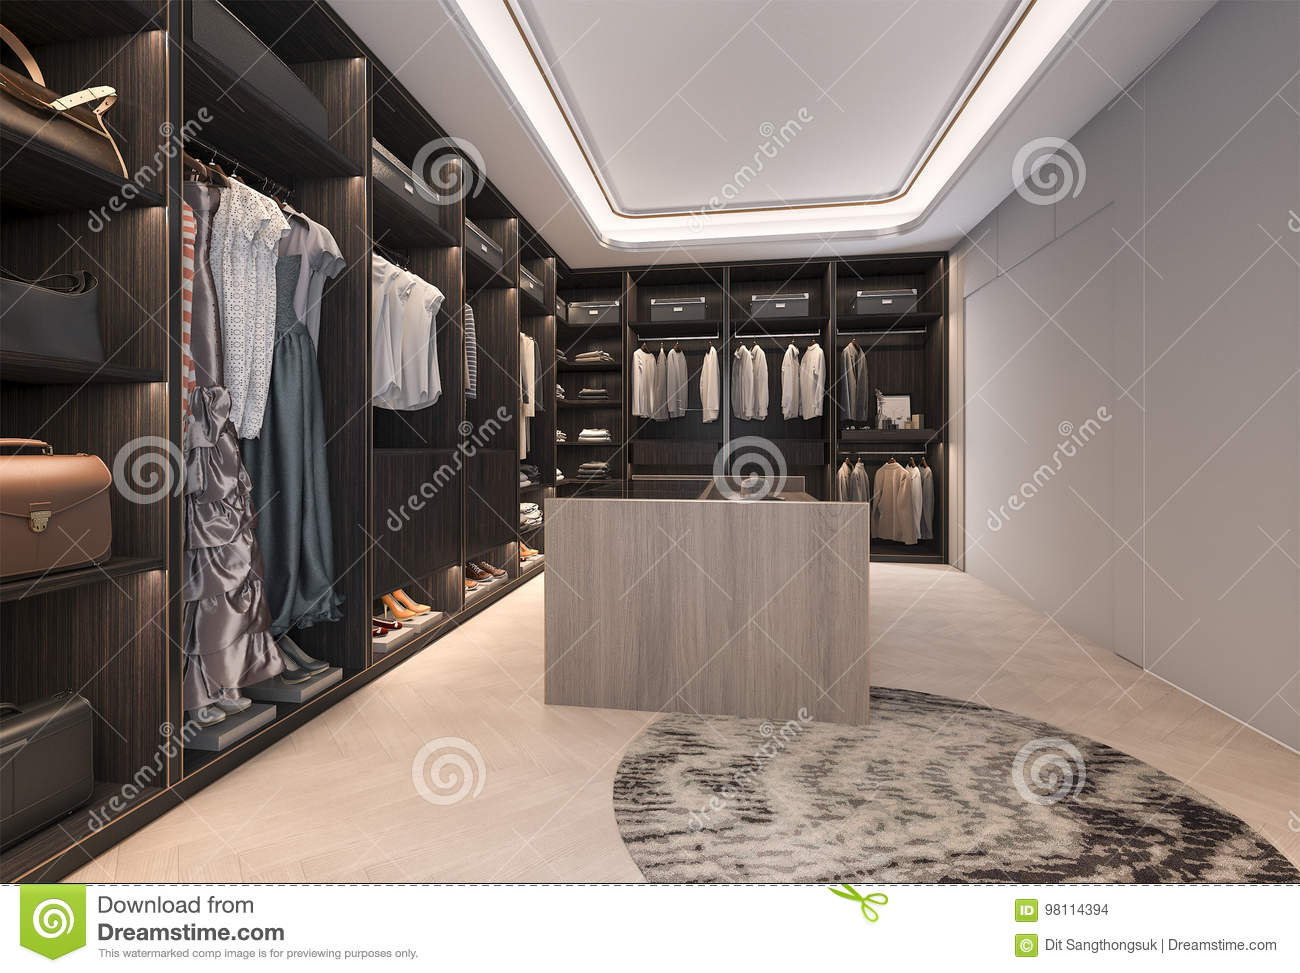 Download 3d Rendering Minimal Loft Dark Wood Walk In Closet With Wardrobe  Stock Illustration   Illustration